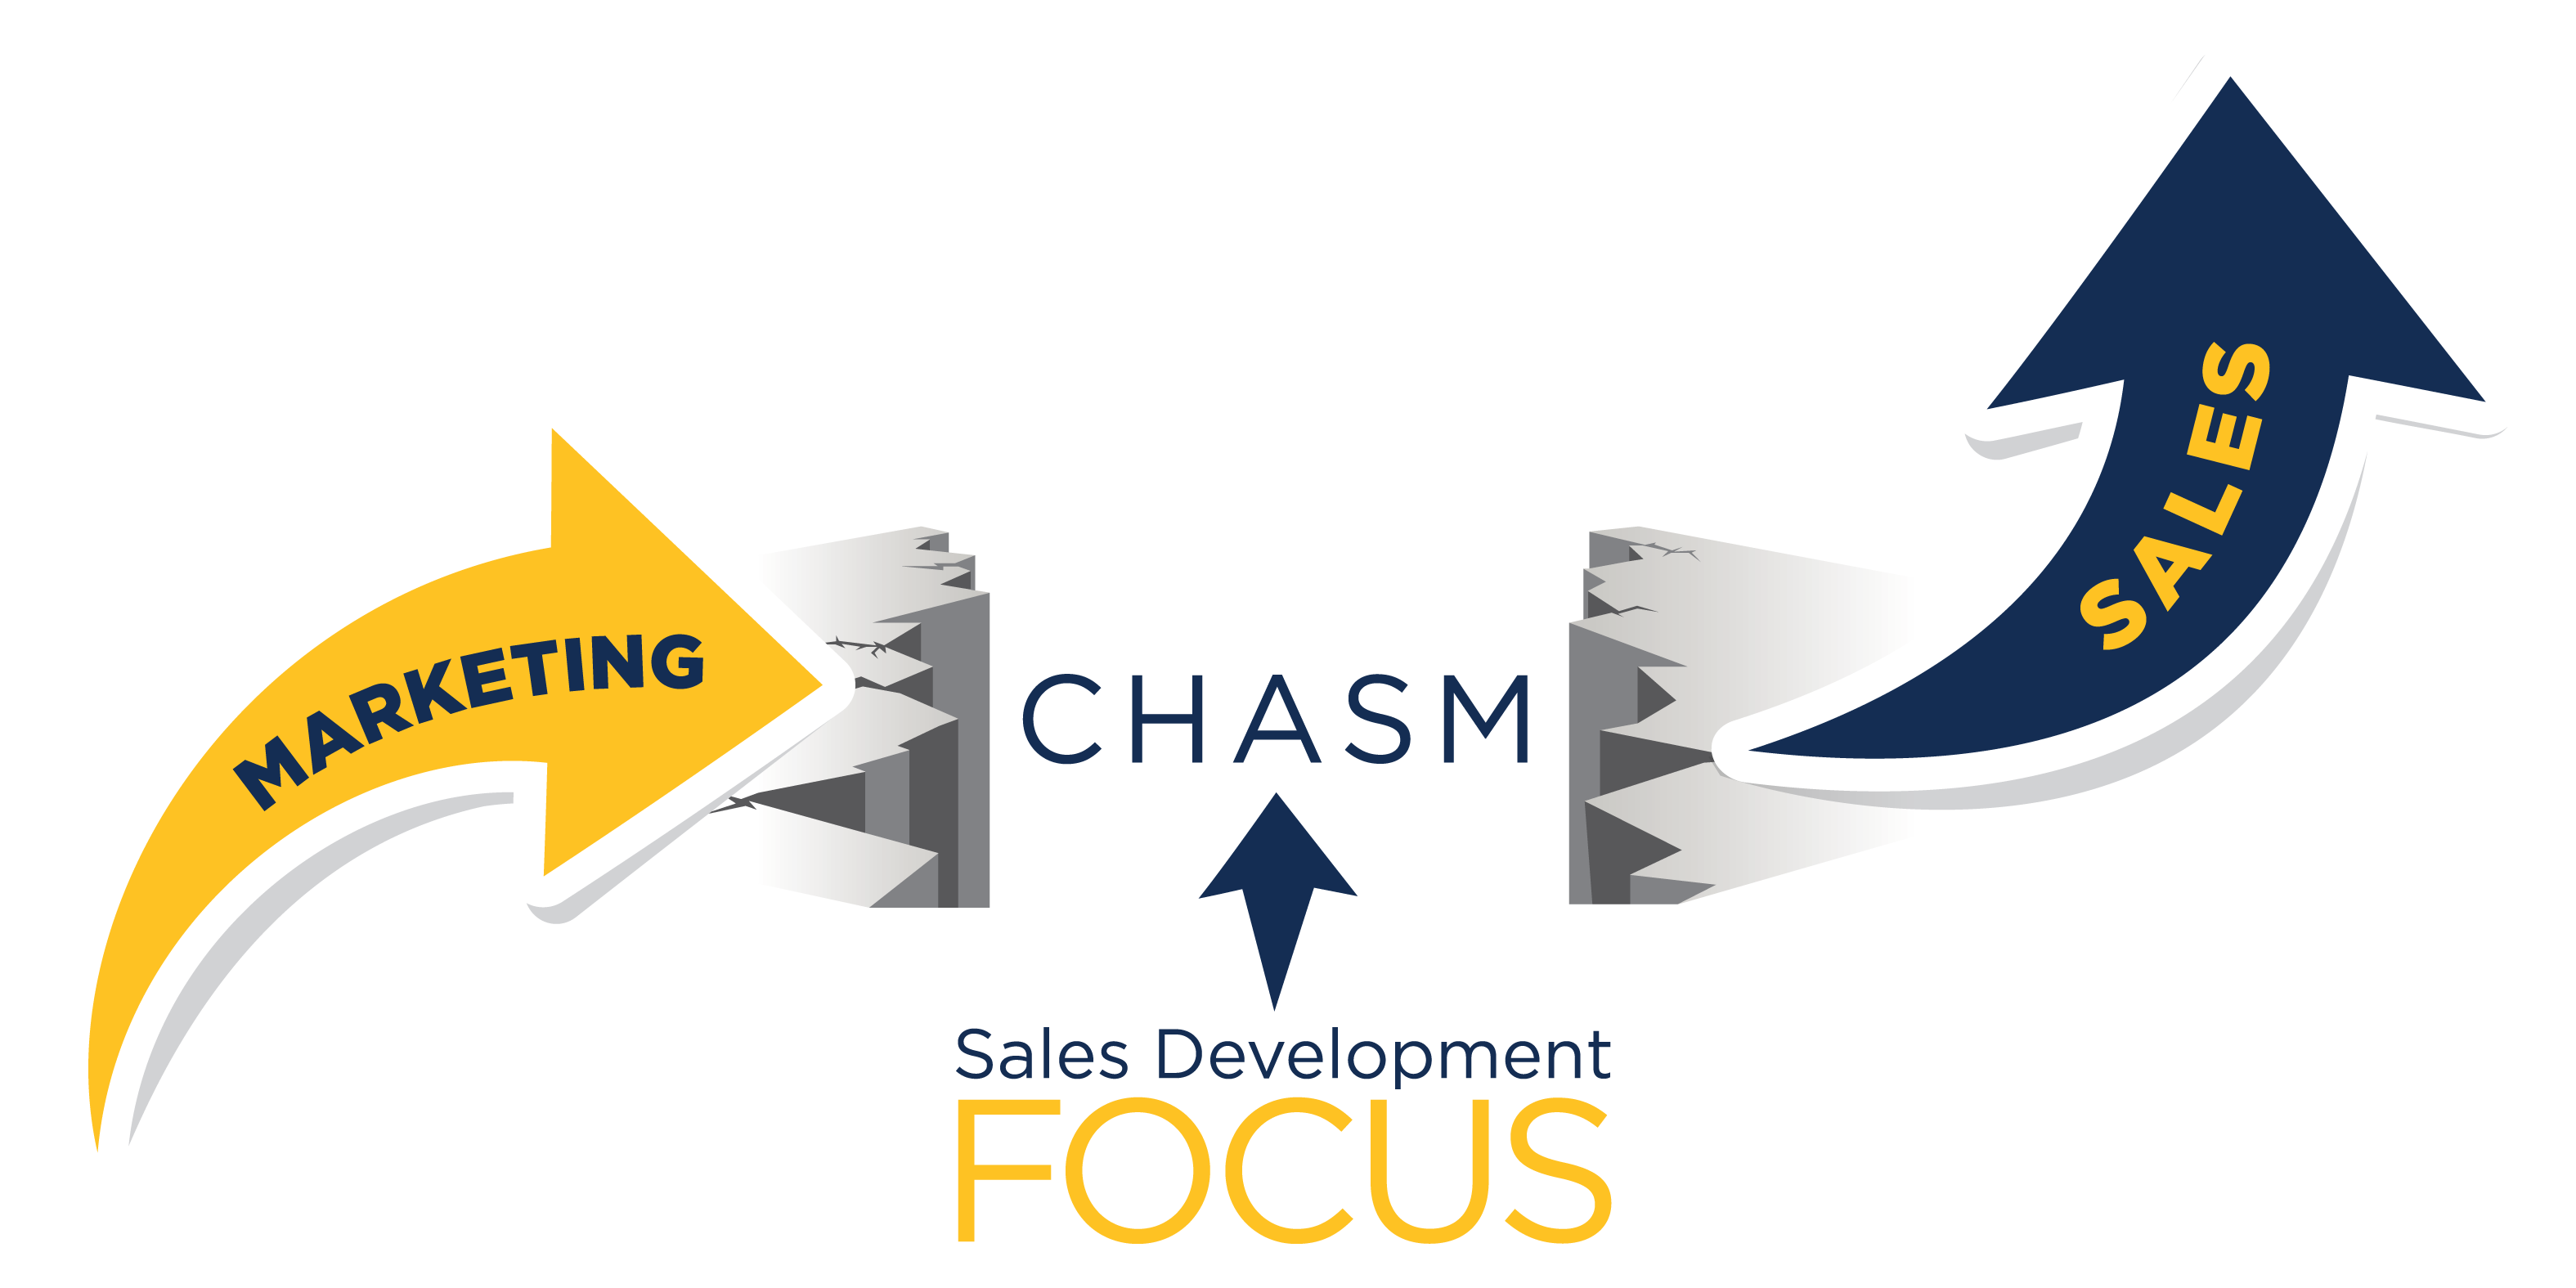 sales-development-chasm